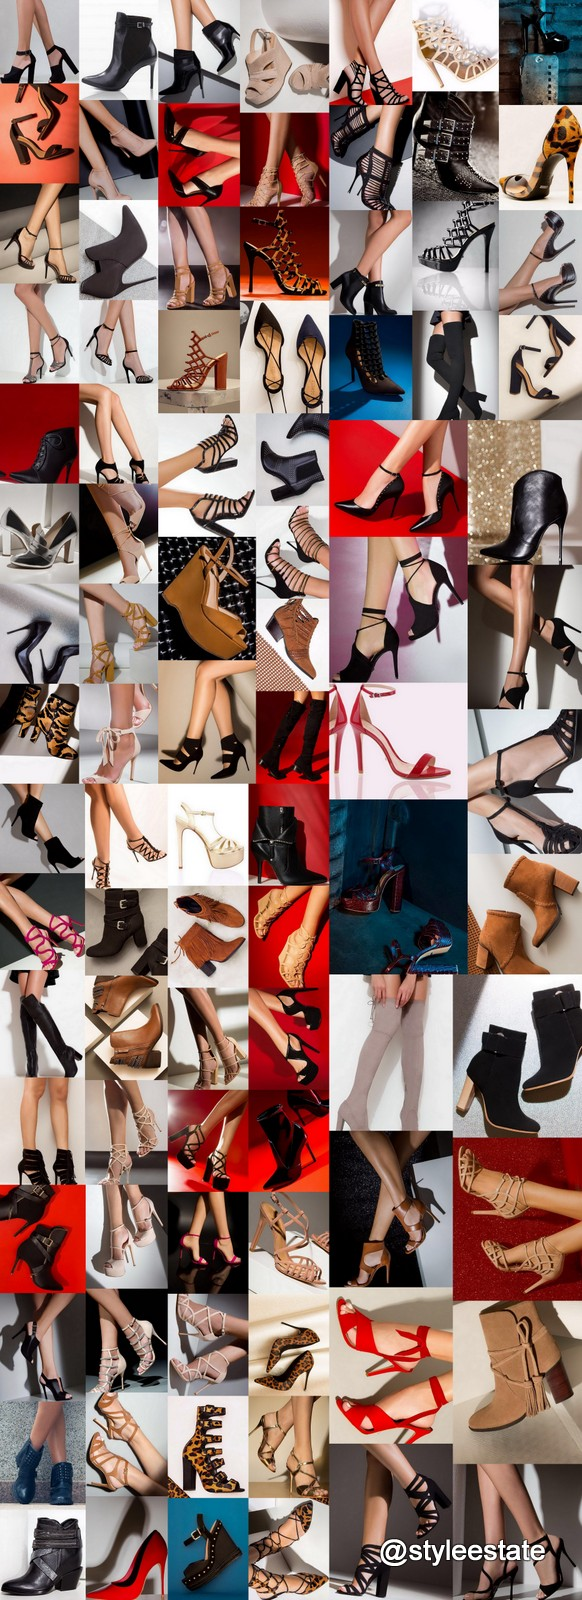 These 91 #sexyheels 👠@schutzofficial will lift you🆙 this🍁❄️2016